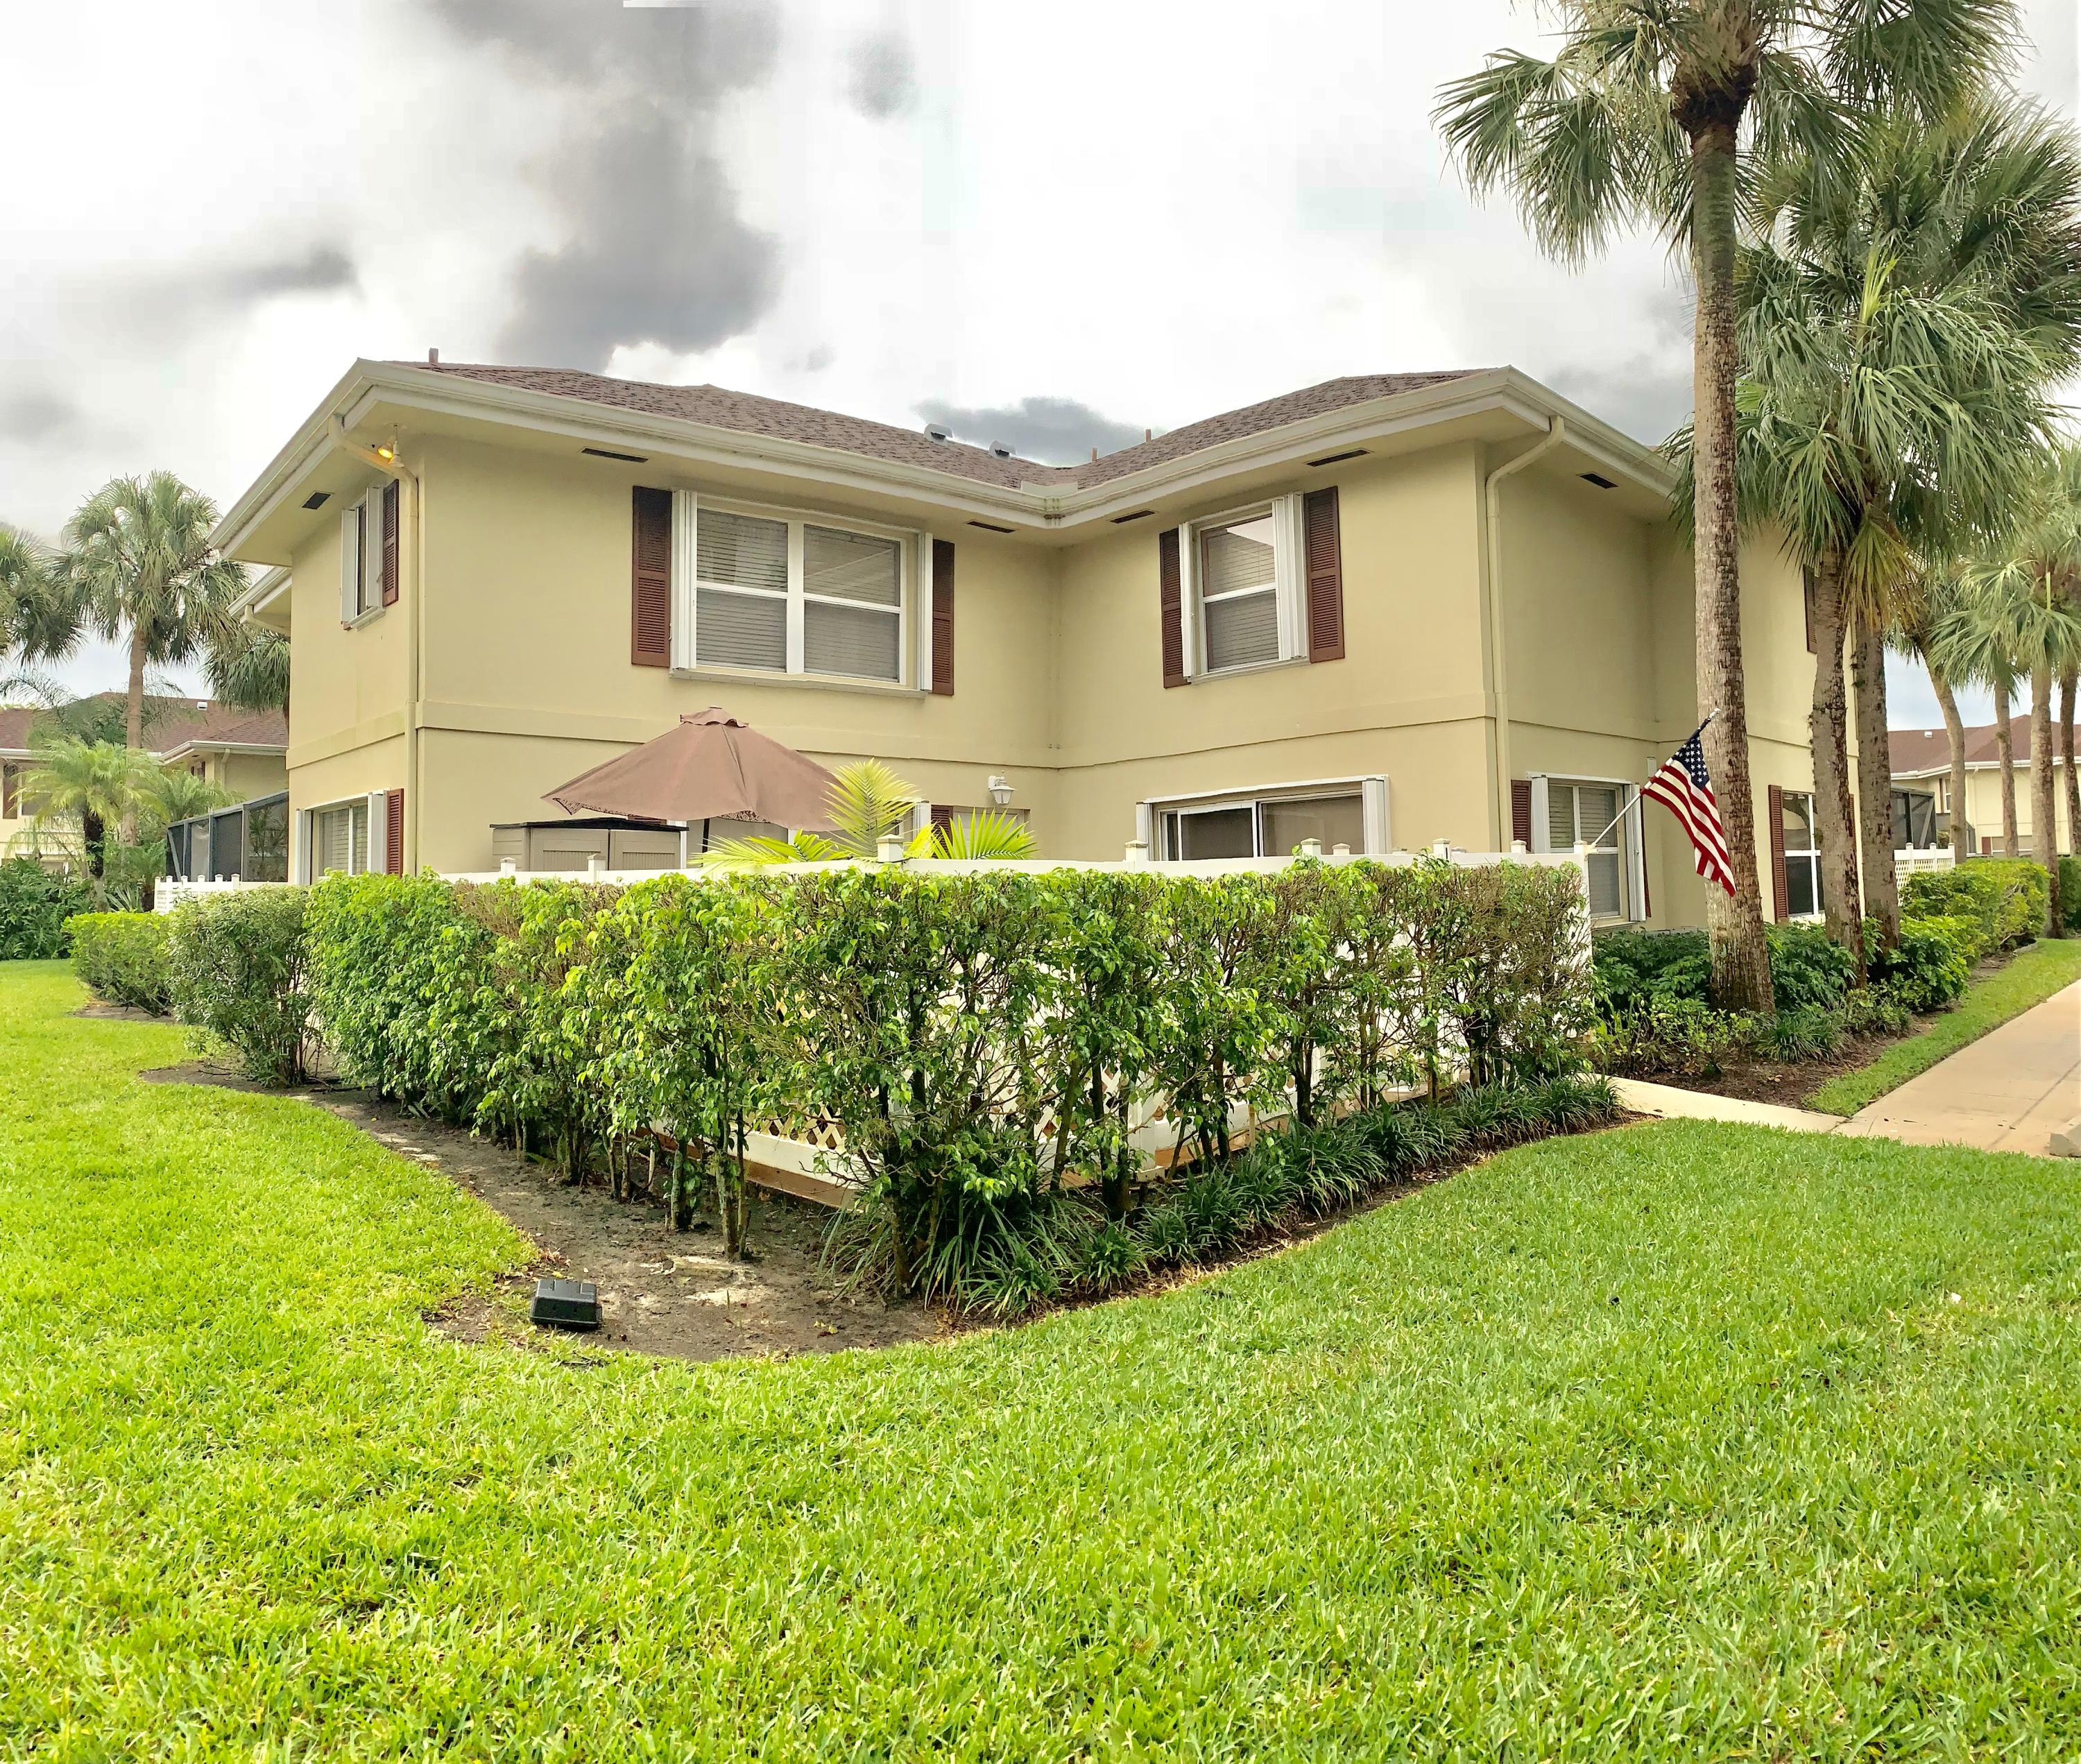 Royal Palm Beach- Florida 33411, 2 Bedrooms Bedrooms, ,2 BathroomsBathrooms,Residential,For Sale,Amherst,RX-10530257